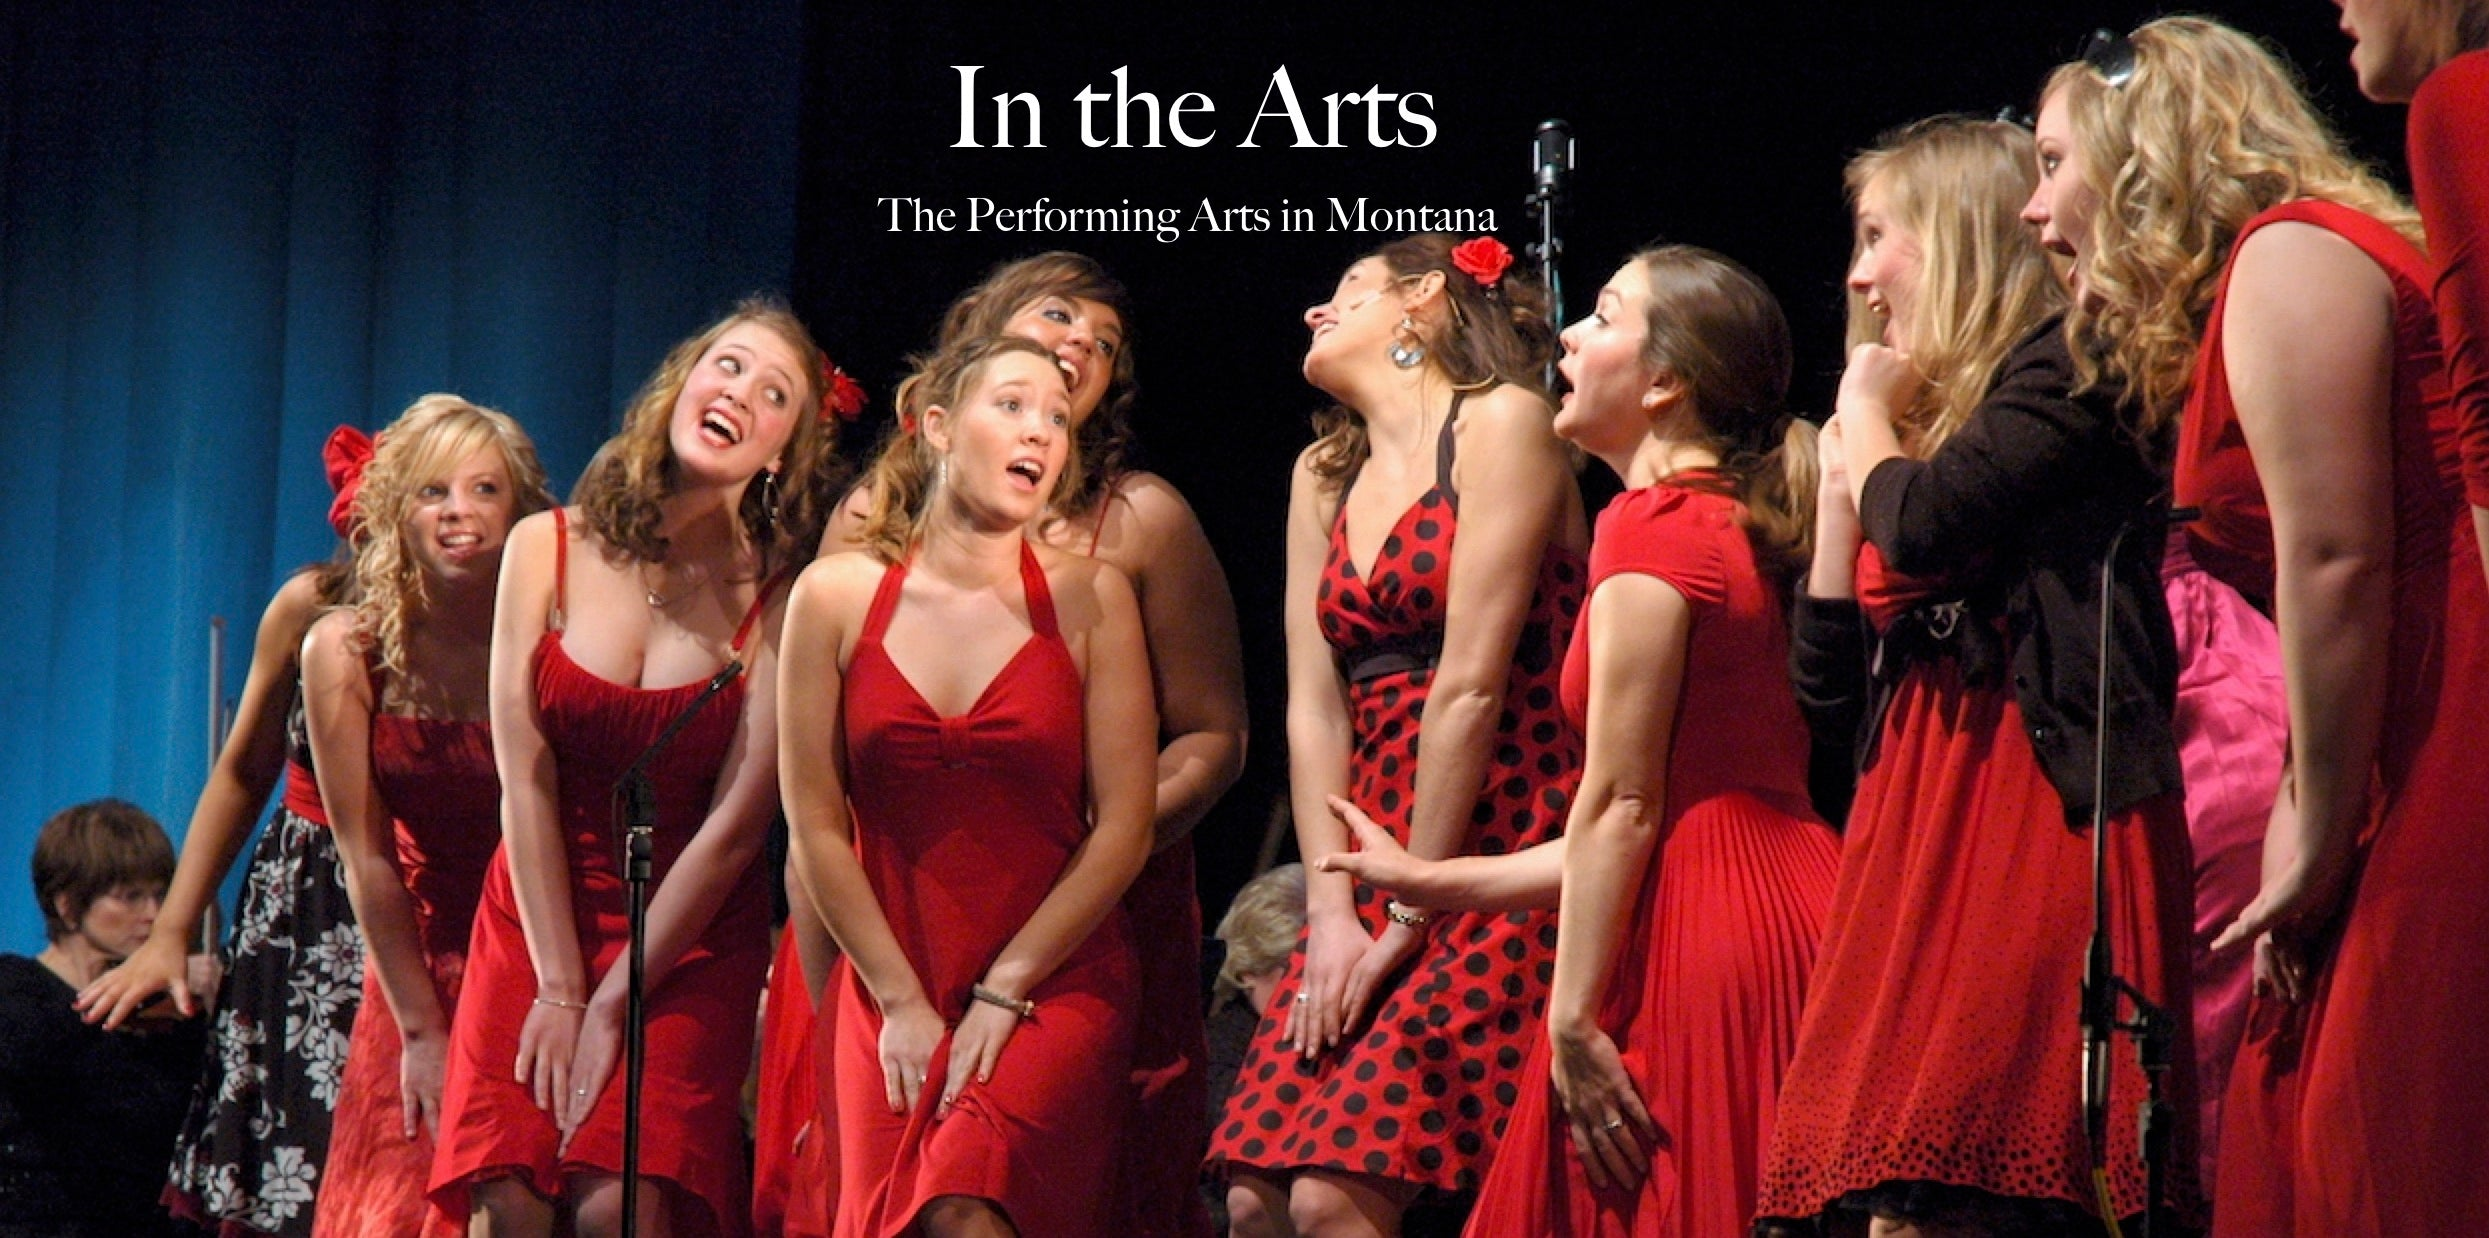 montana living, in the arts, performing arts, west side story alpine theatre project